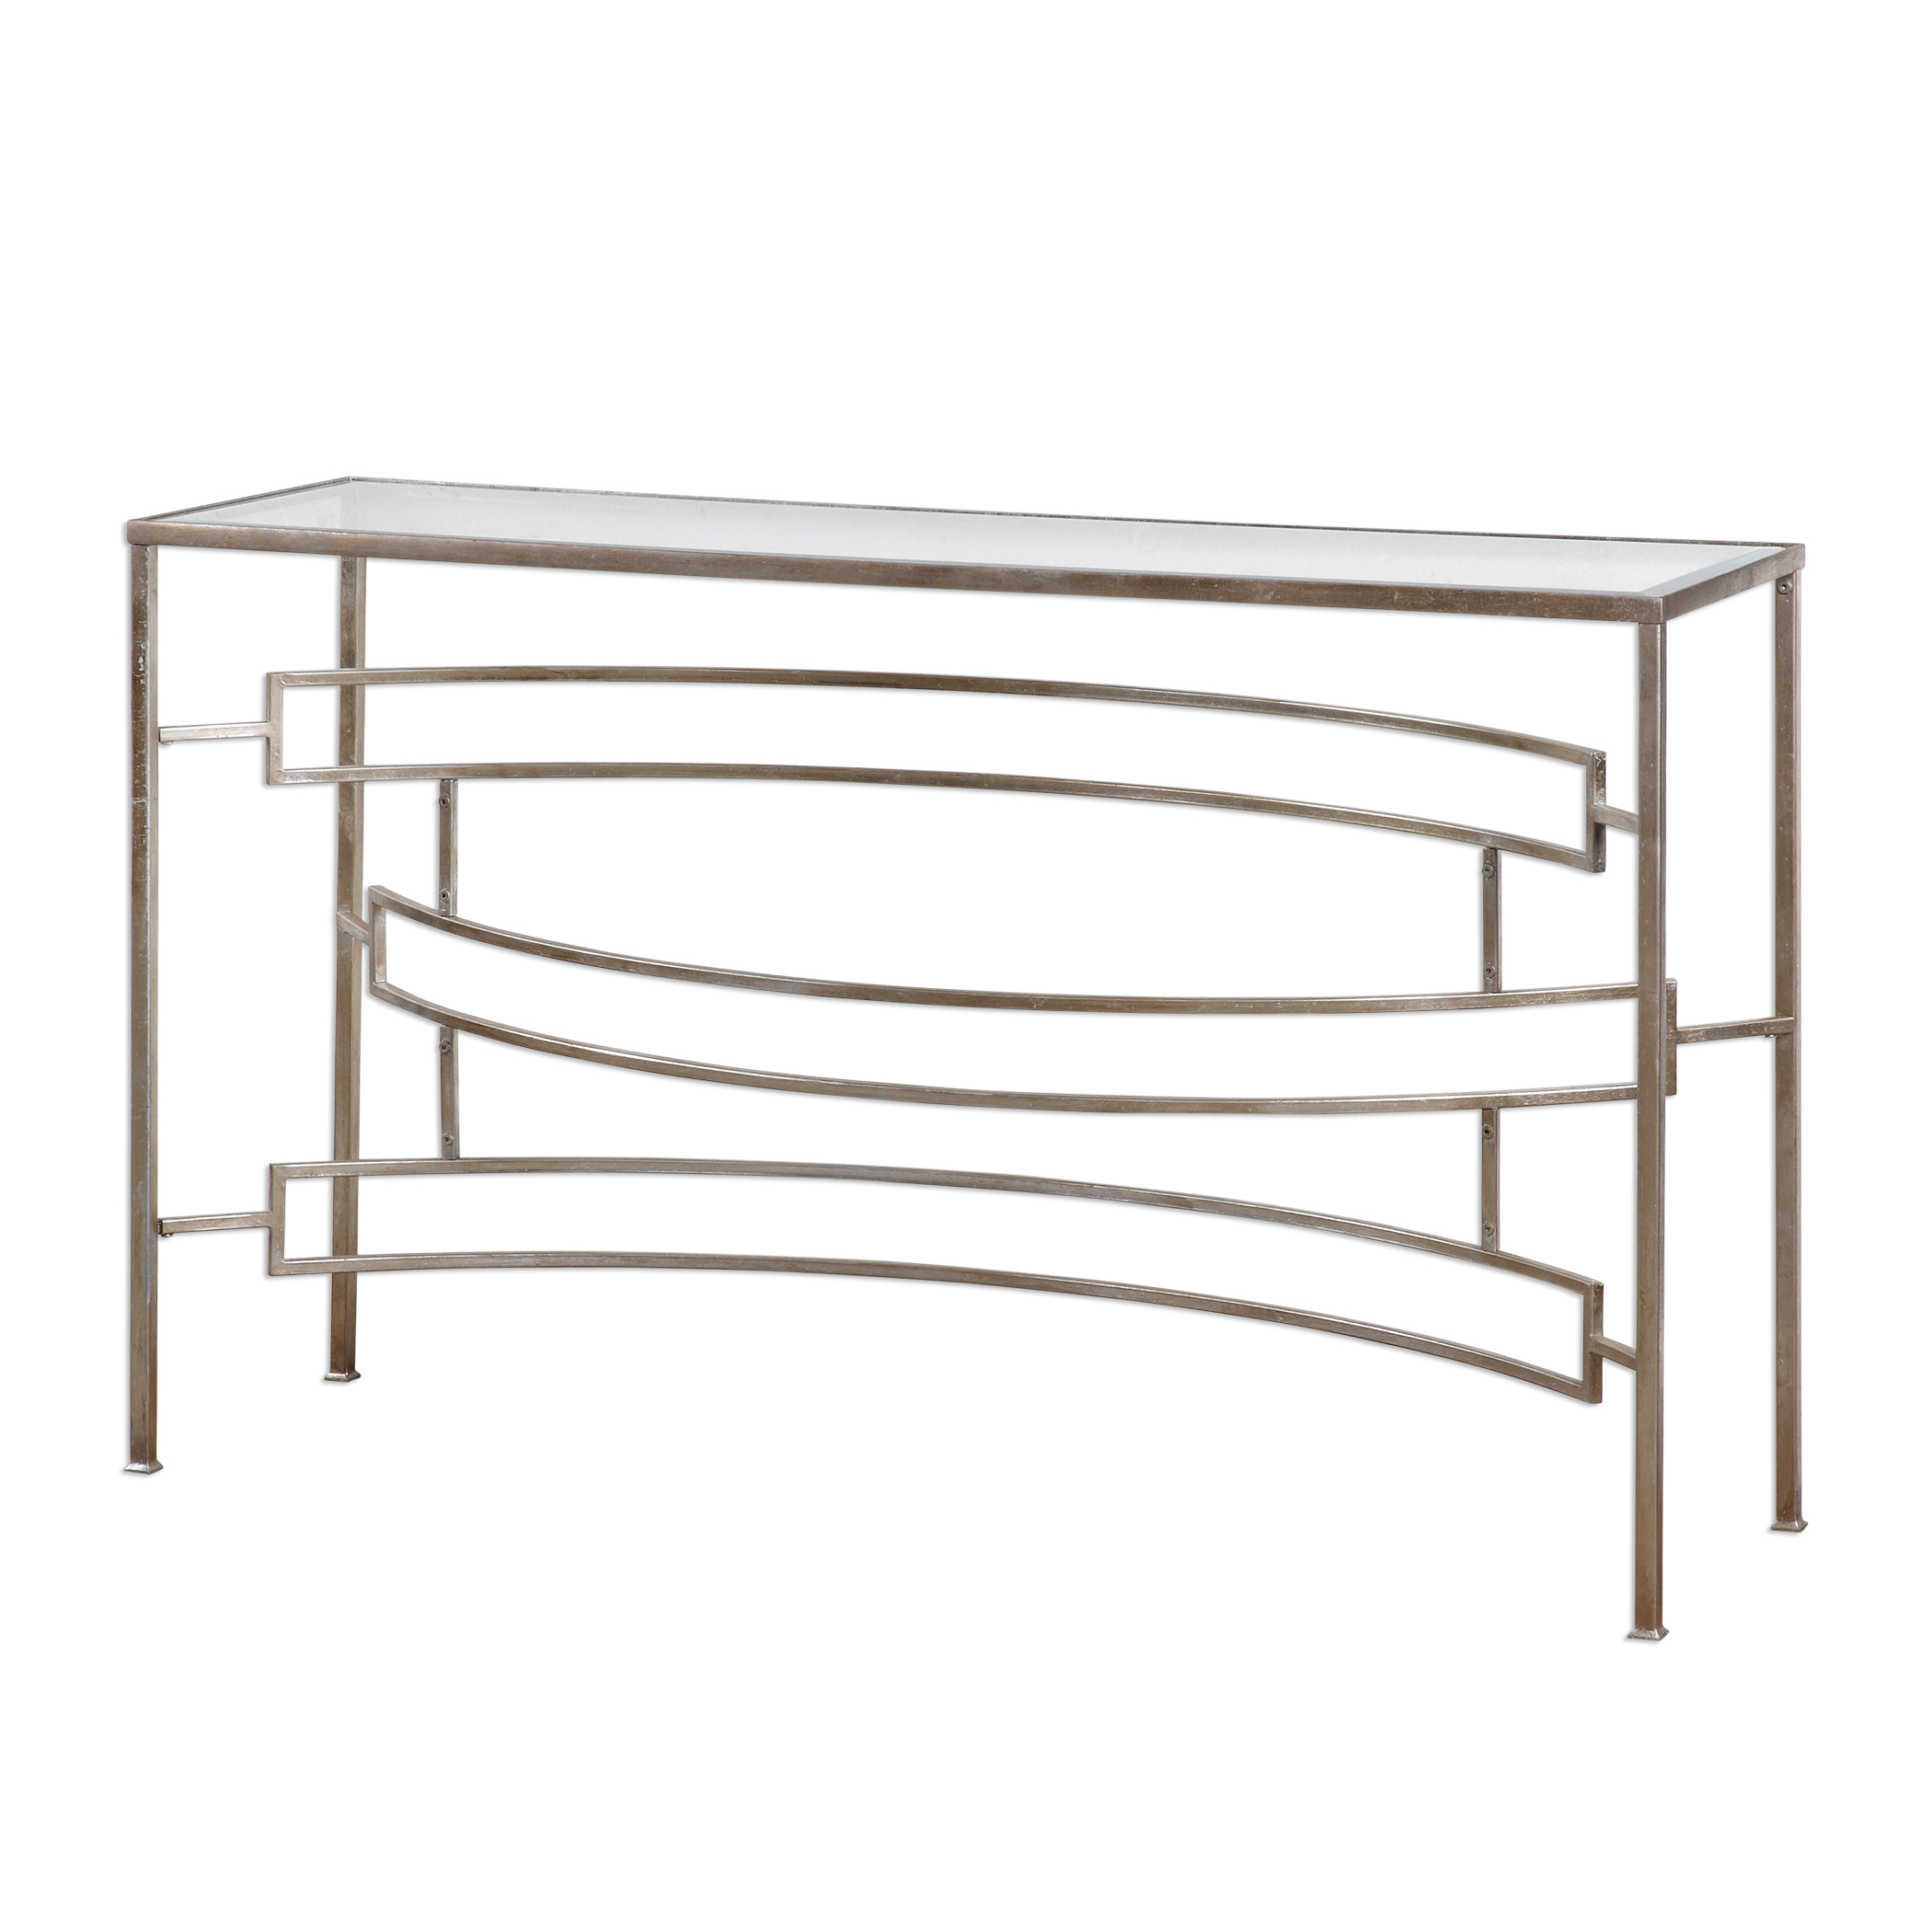 Uttermost Accent Furniture Eilinora Silver Console Table - Item Number: 24636